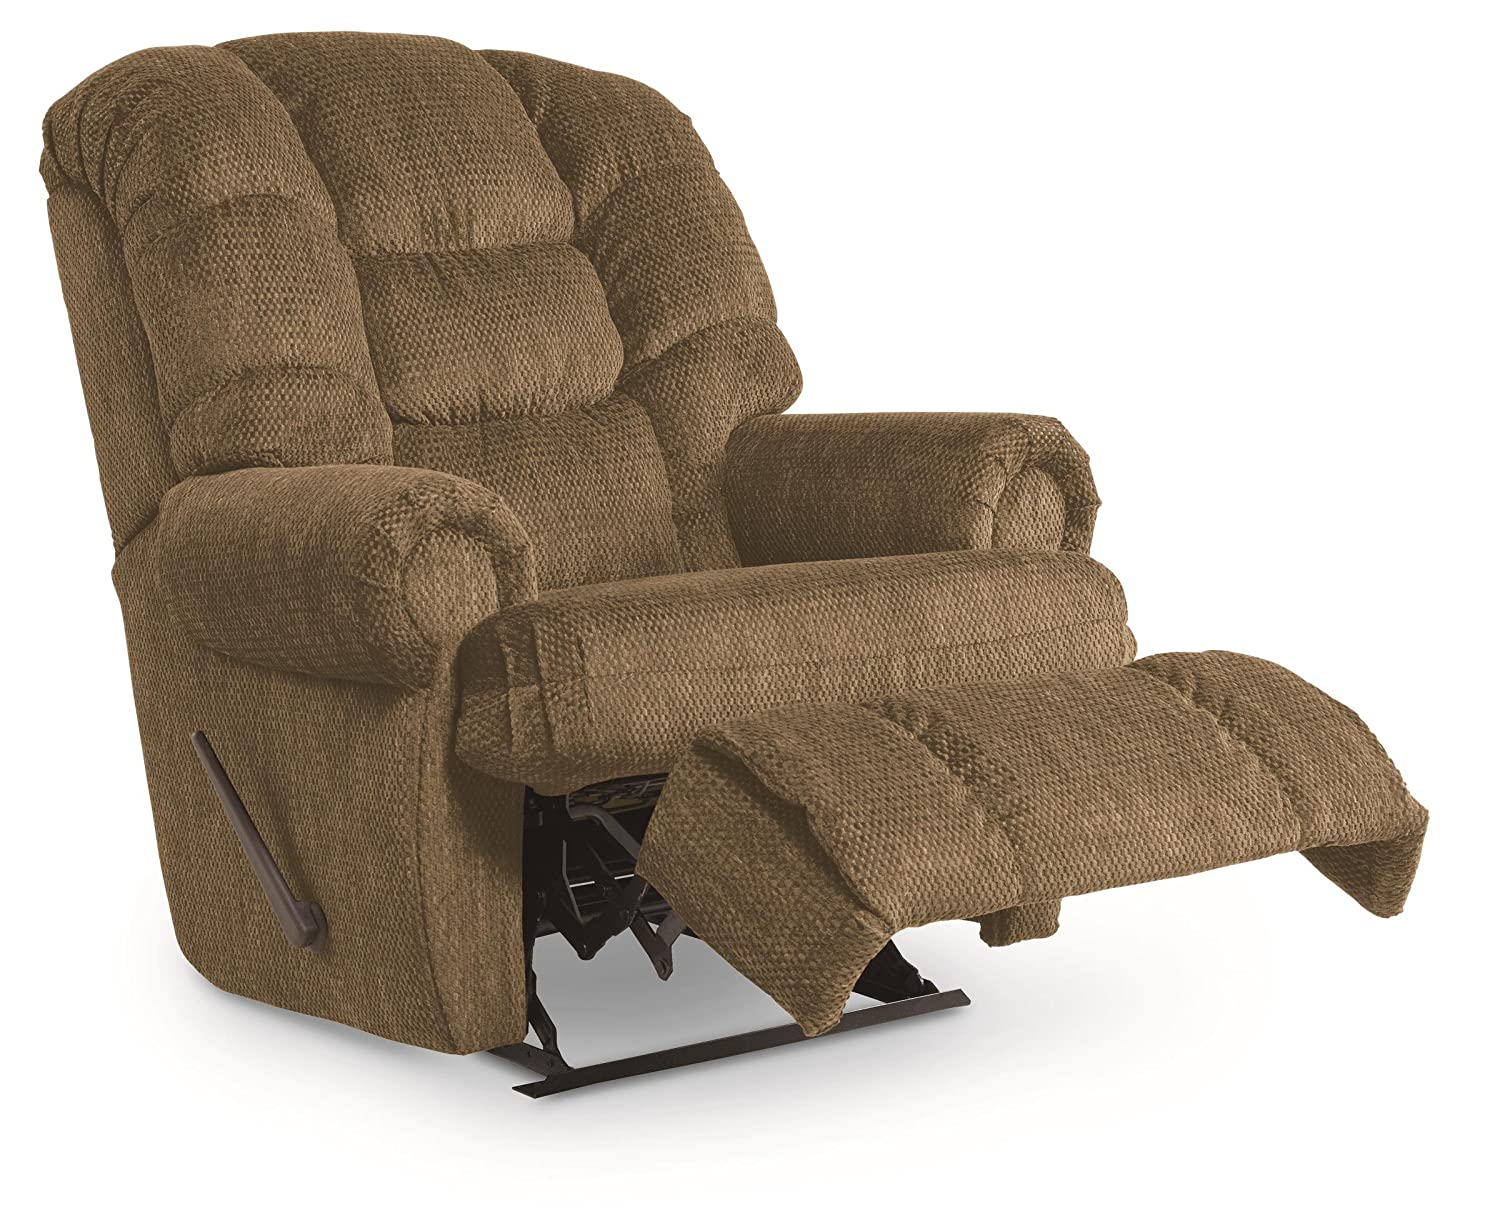 Amazon.com Lane Furniture Stallion Recliner Praline Kitchen u0026 Dining  sc 1 st  Amazon.com & Amazon.com: Lane Furniture Stallion Recliner Praline: Kitchen ... islam-shia.org